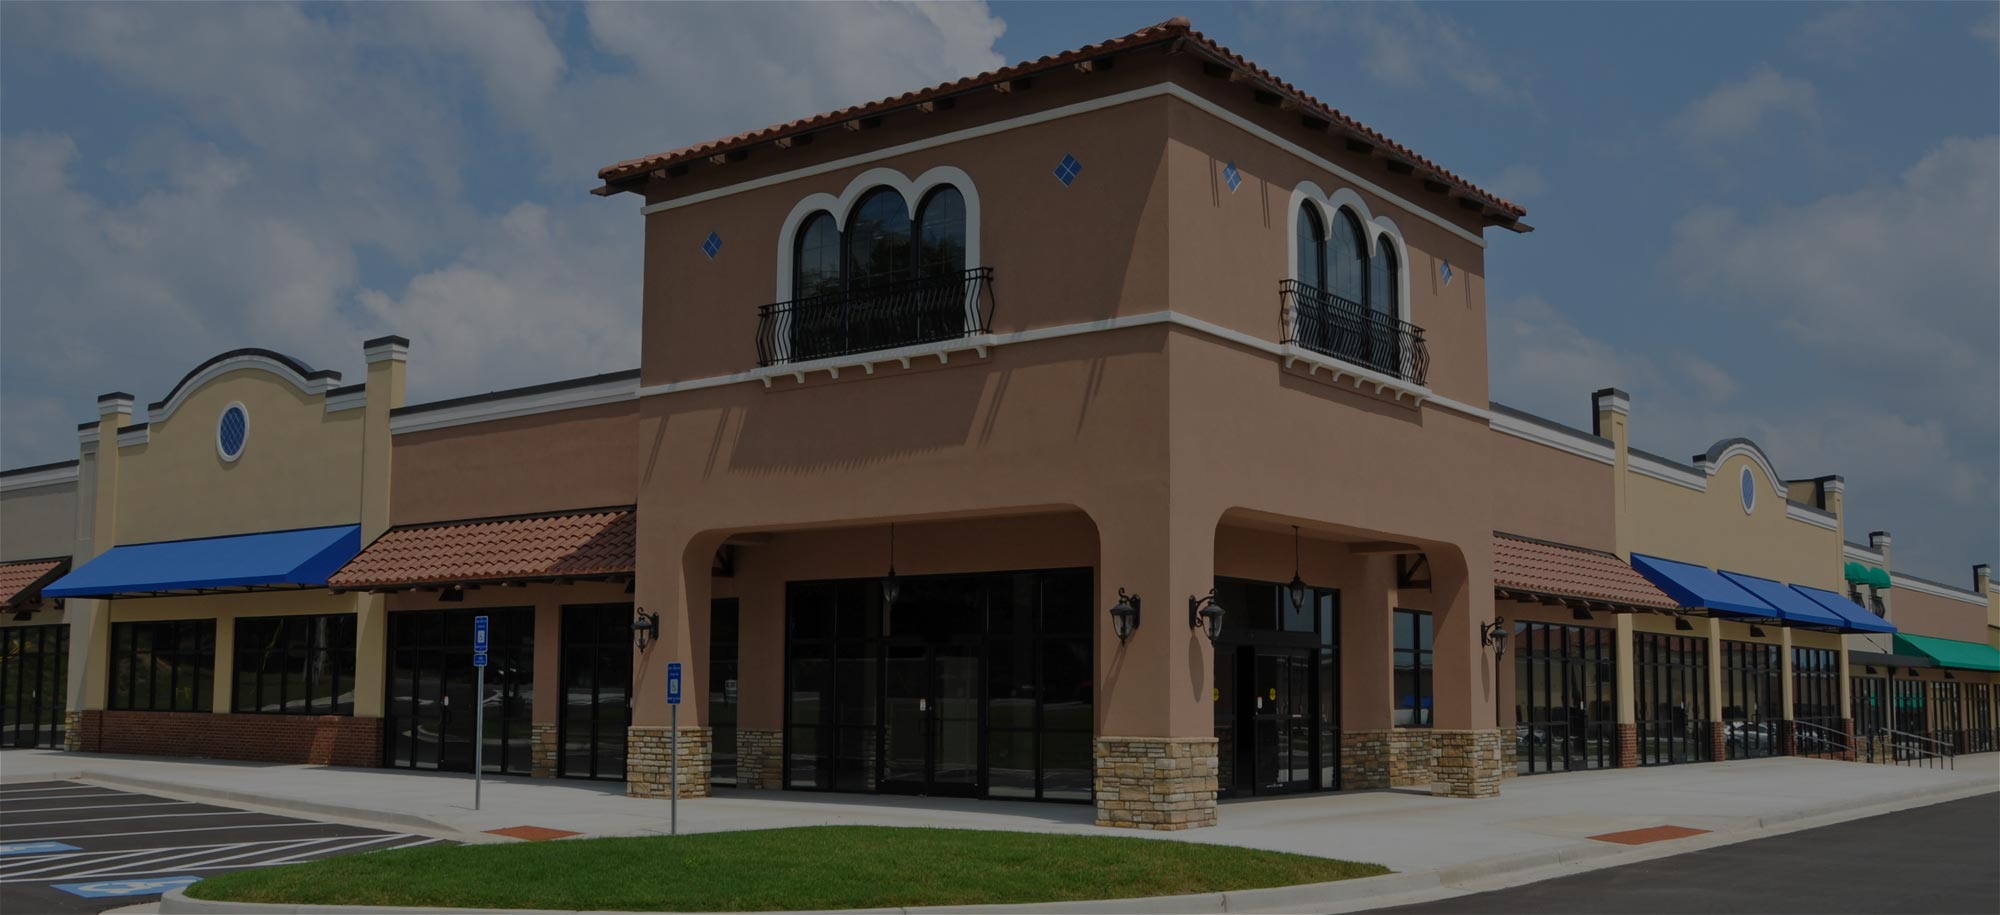 Commercial Real Estate - Retail Buildings